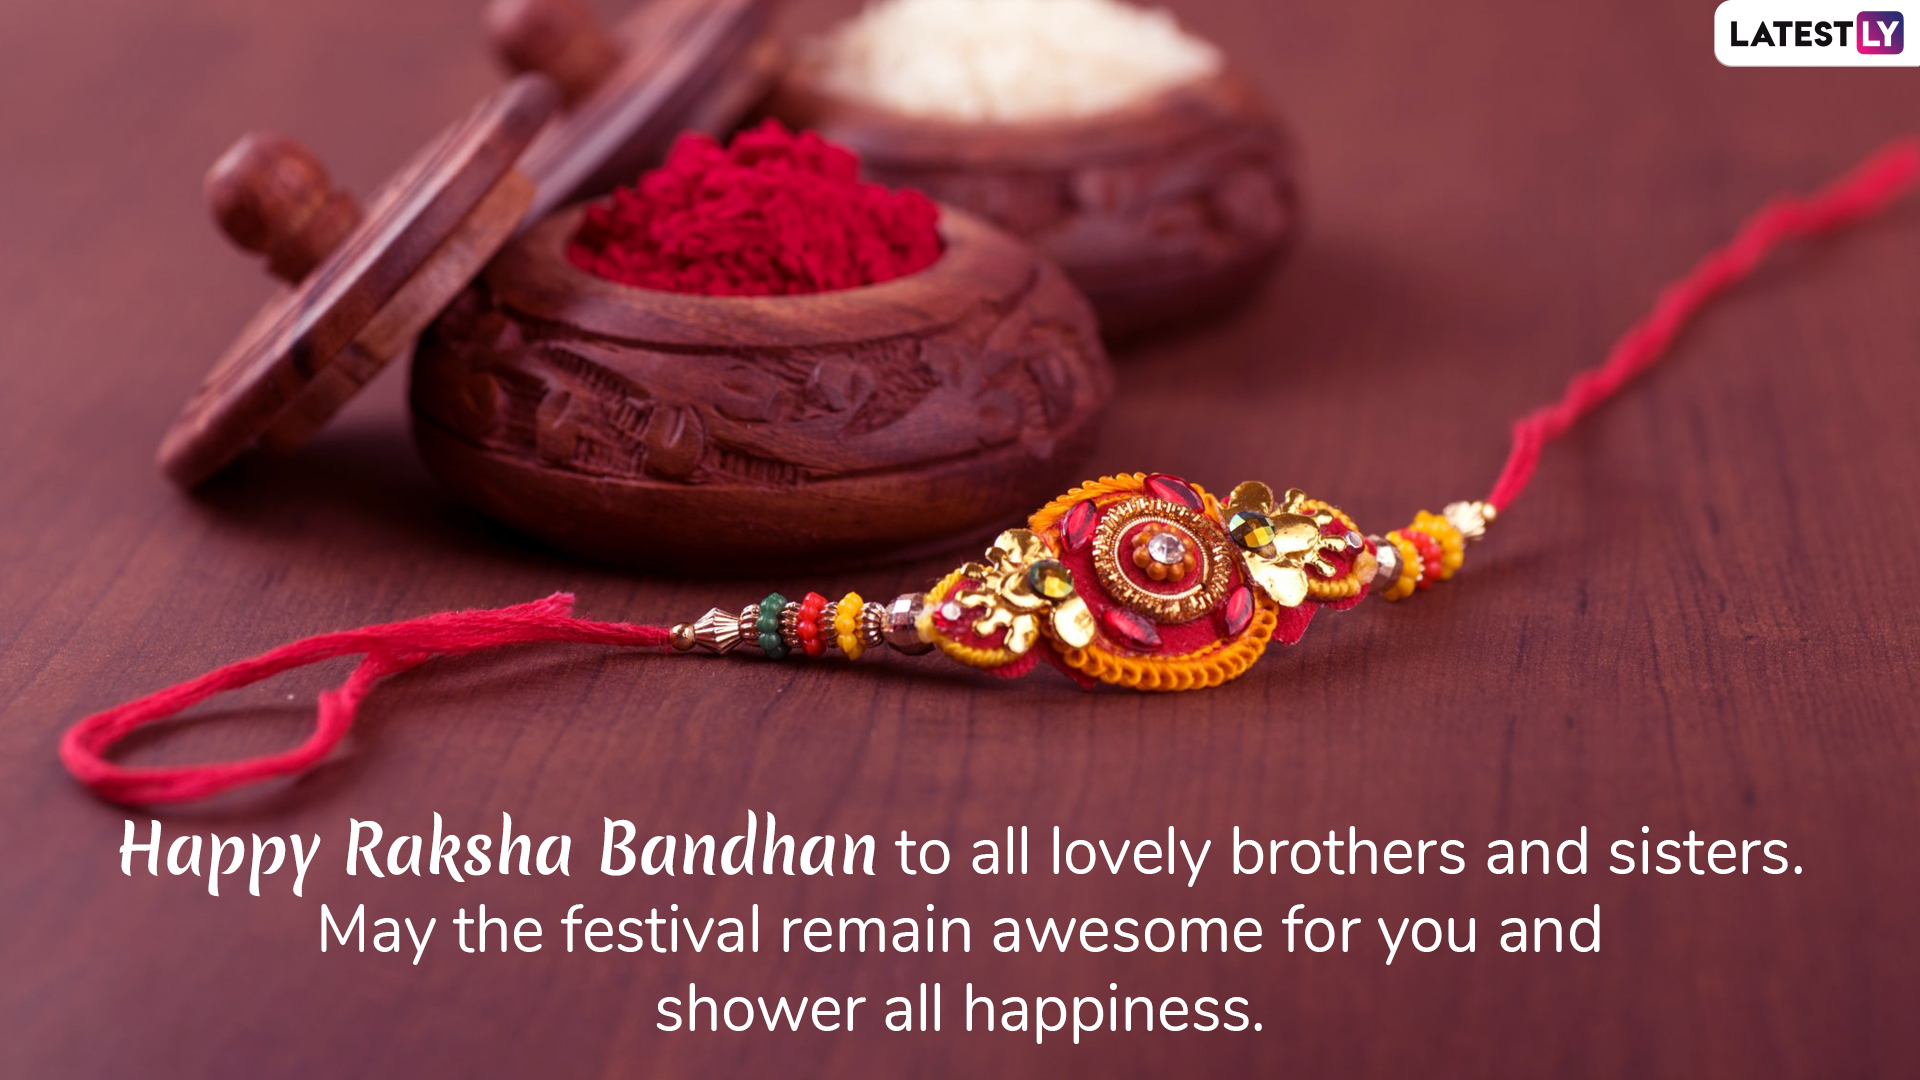 Raksha Bandhan 2019 WhatsApp wish 2 (Photo Credits: File Image)